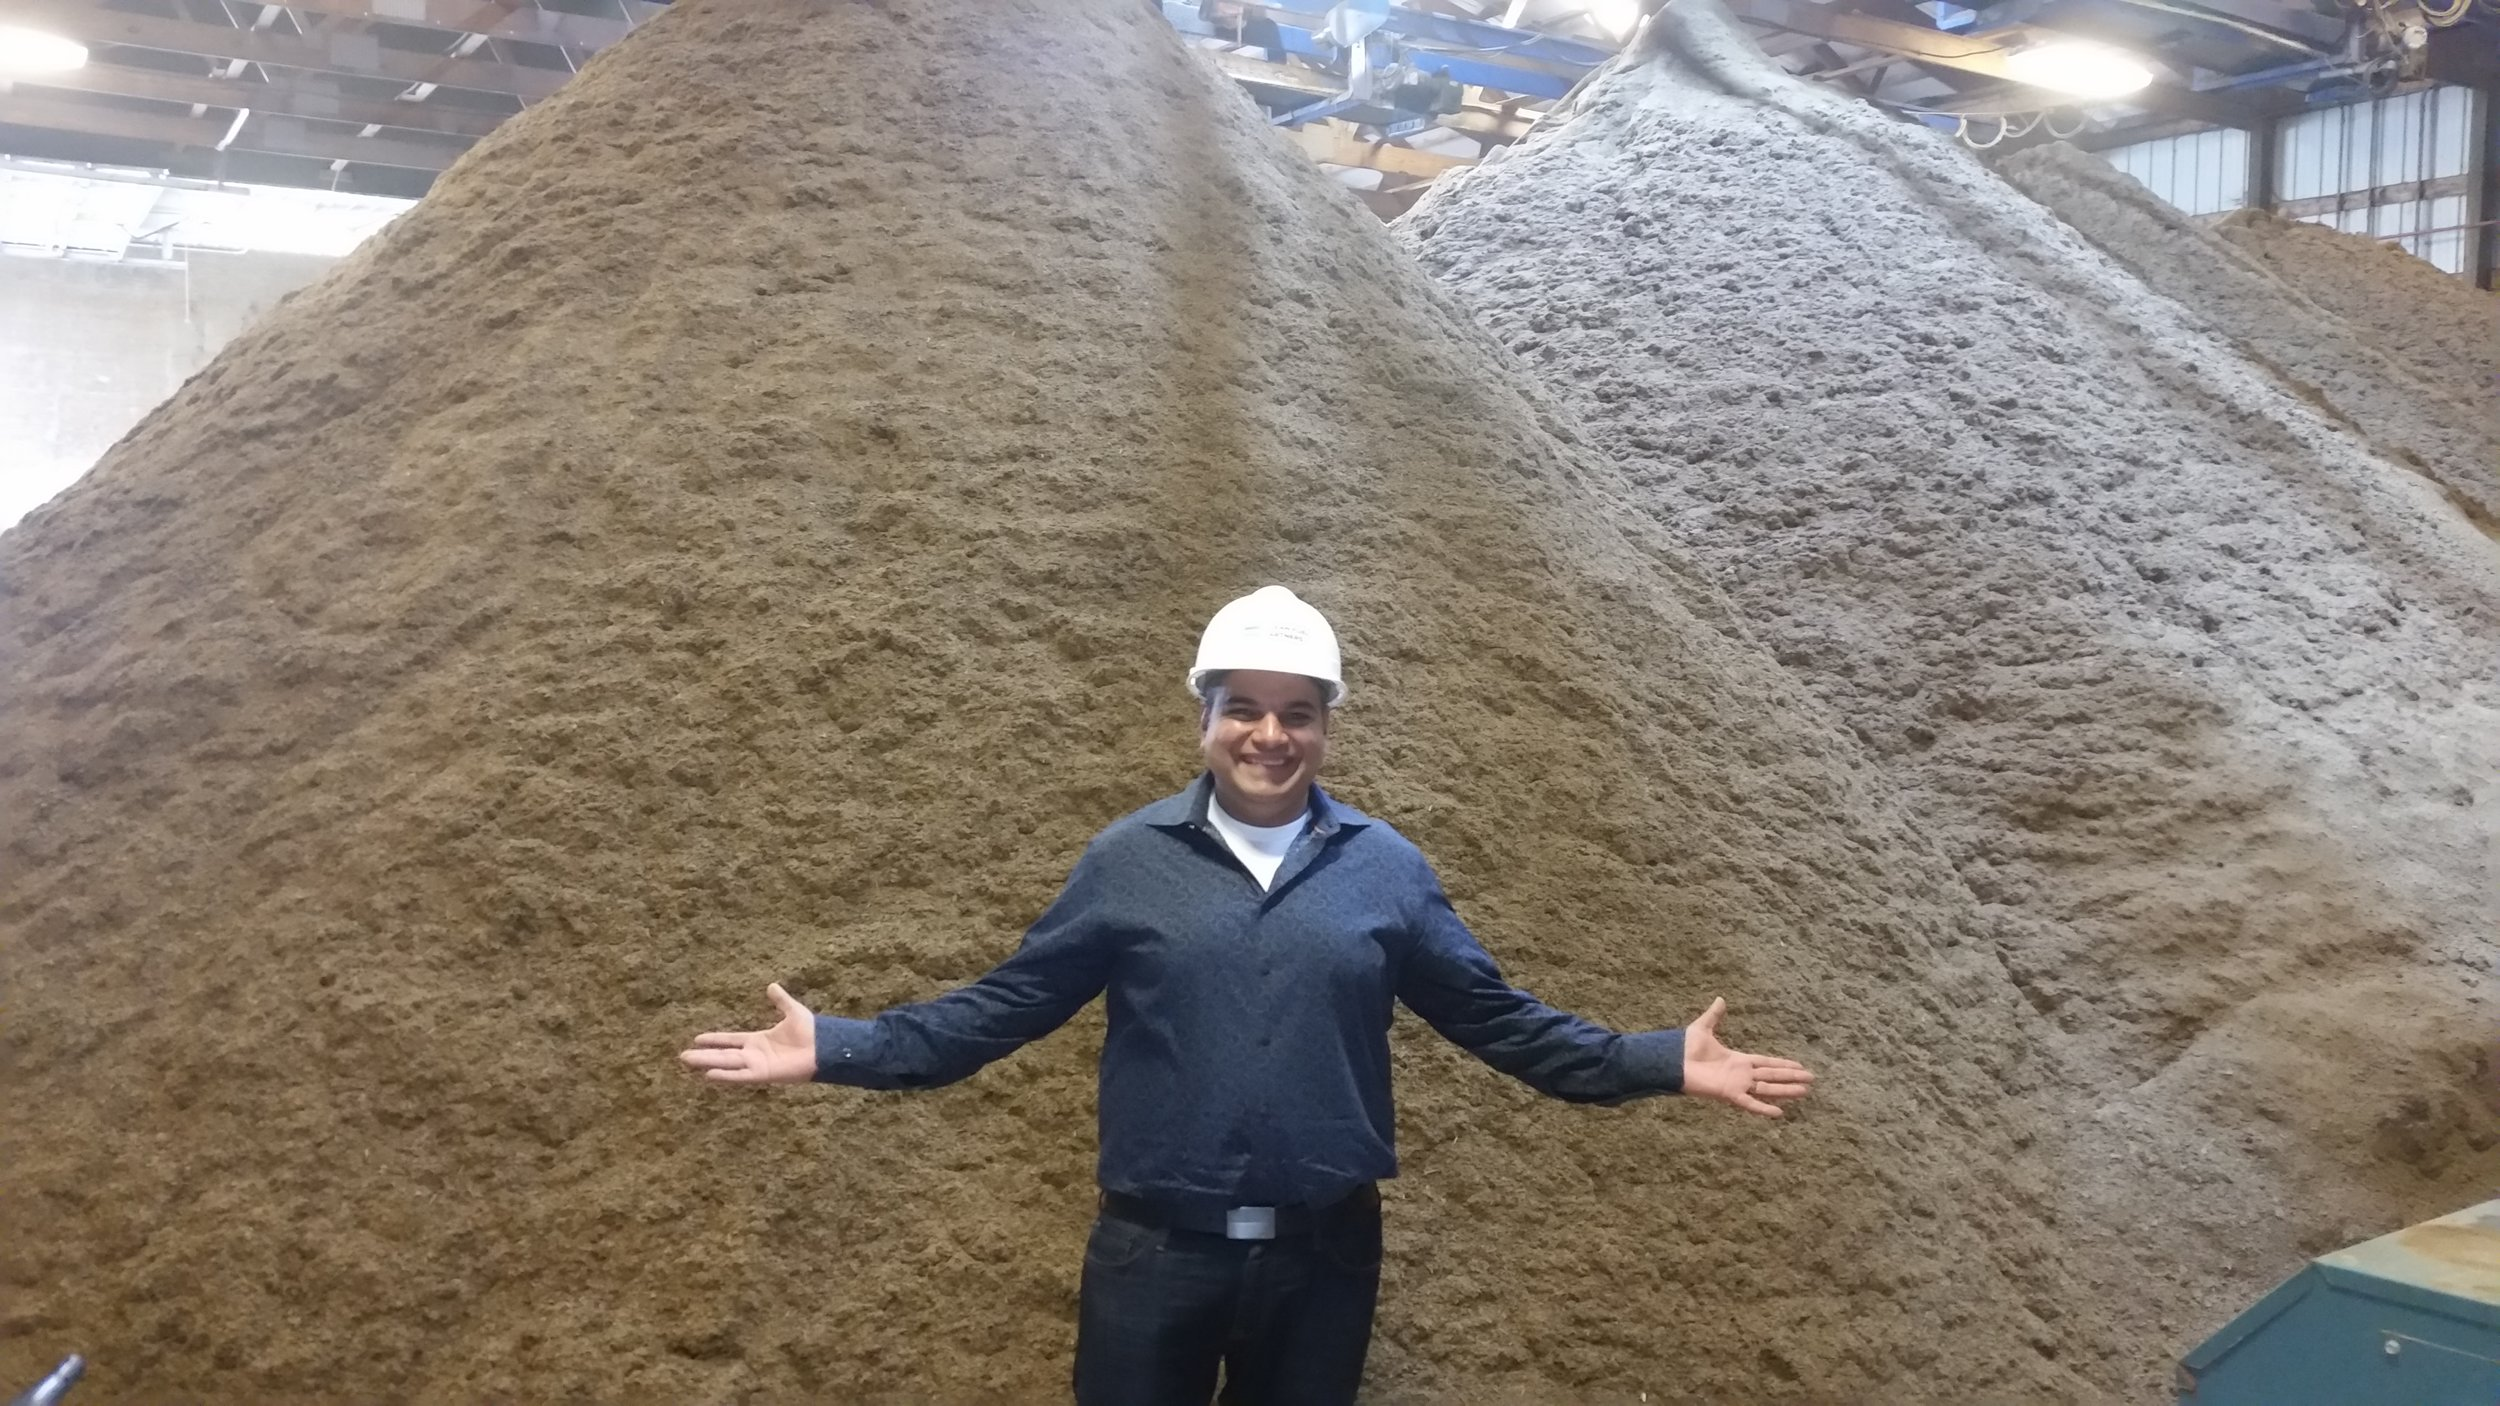 I am standing in front of a pile of digested manure solid after it has been processed.  one of these piles is generated per day and trucked out of the yahara watershed.